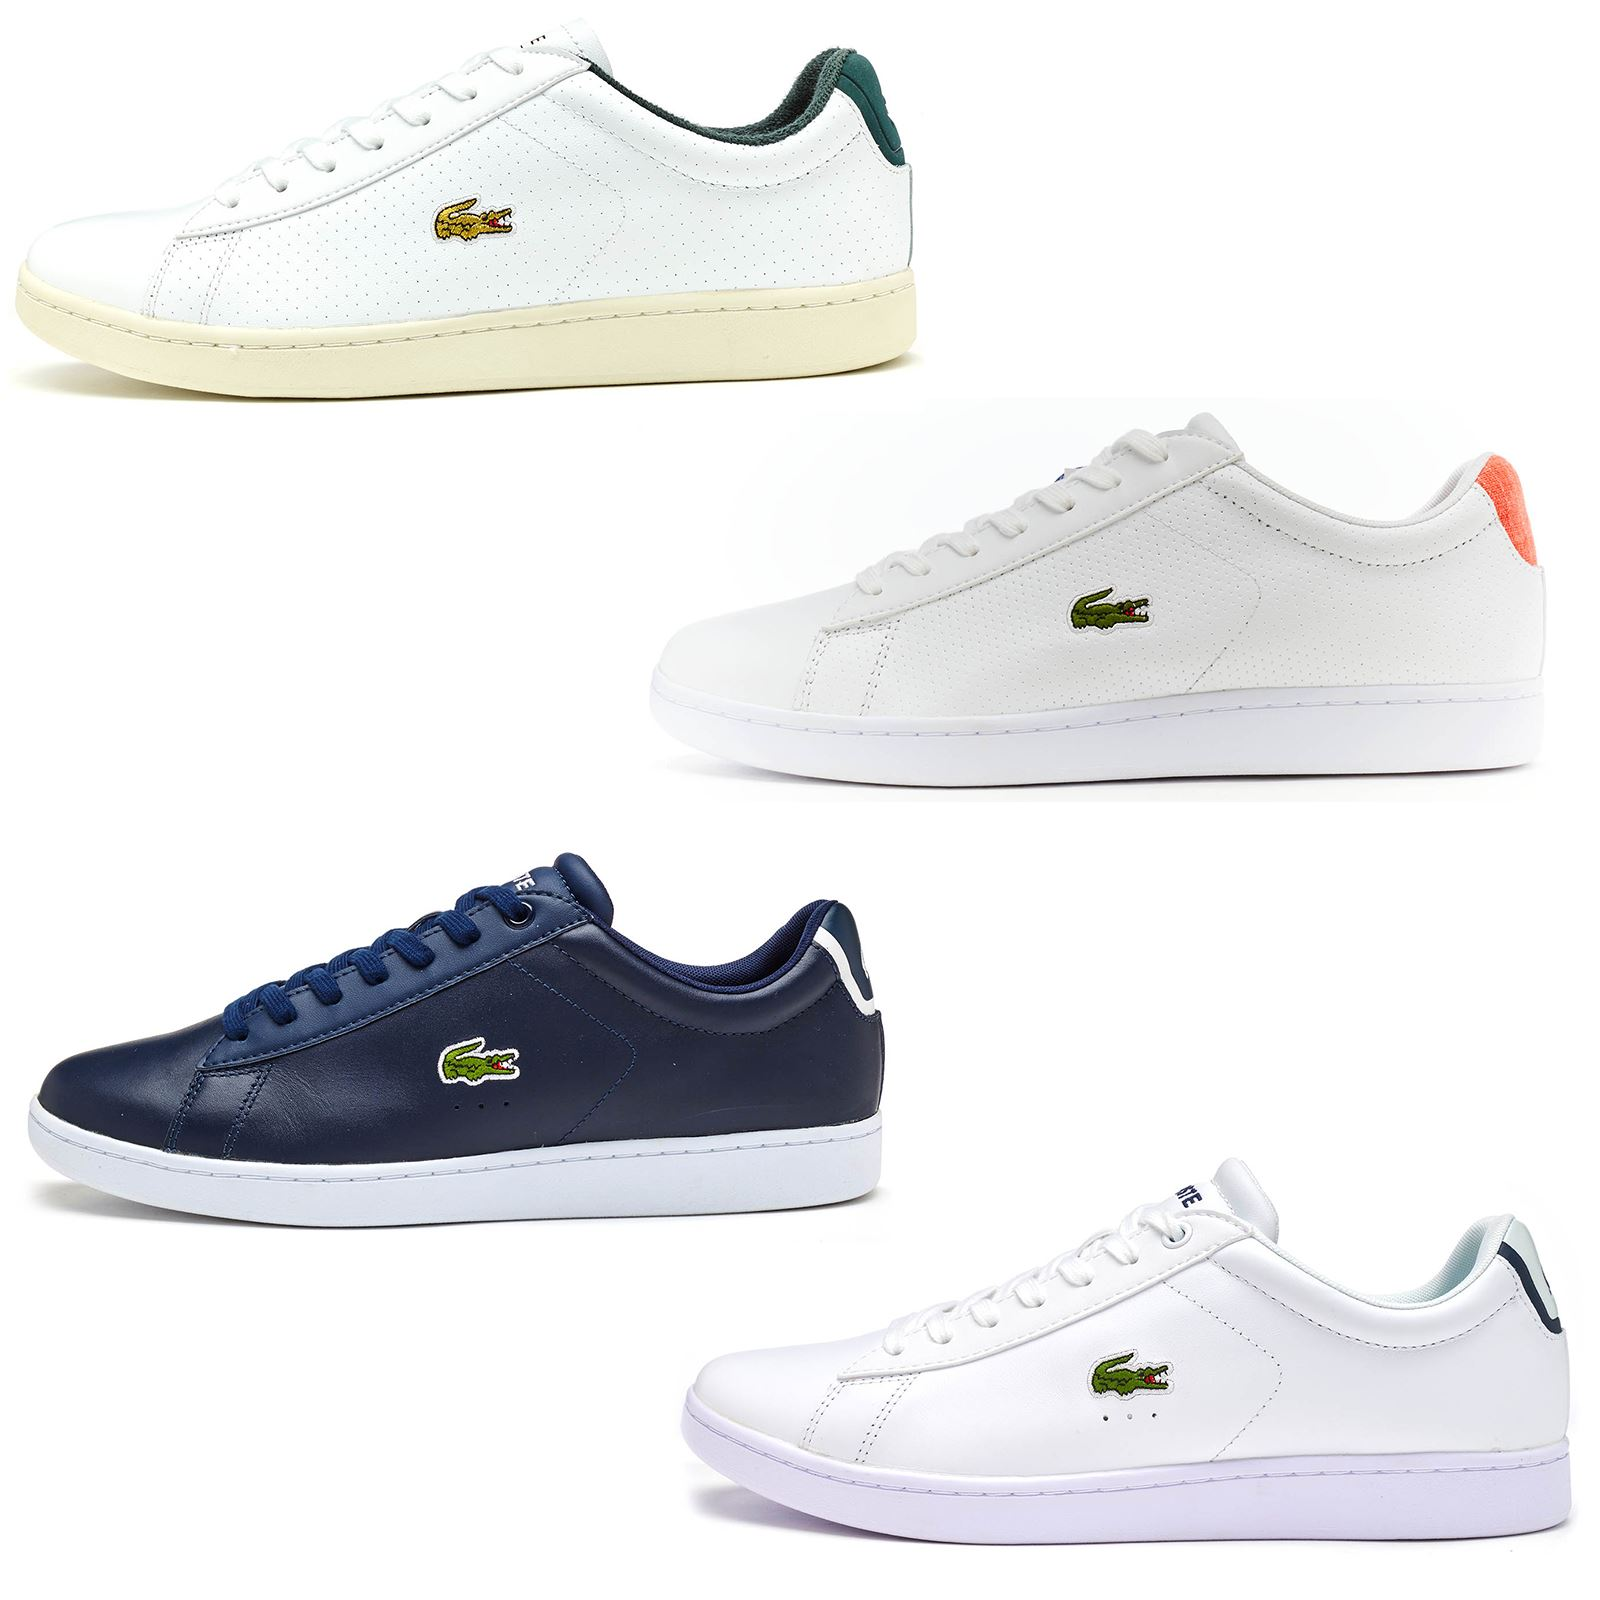 lacoste shoes the iconic cookies kids clothing